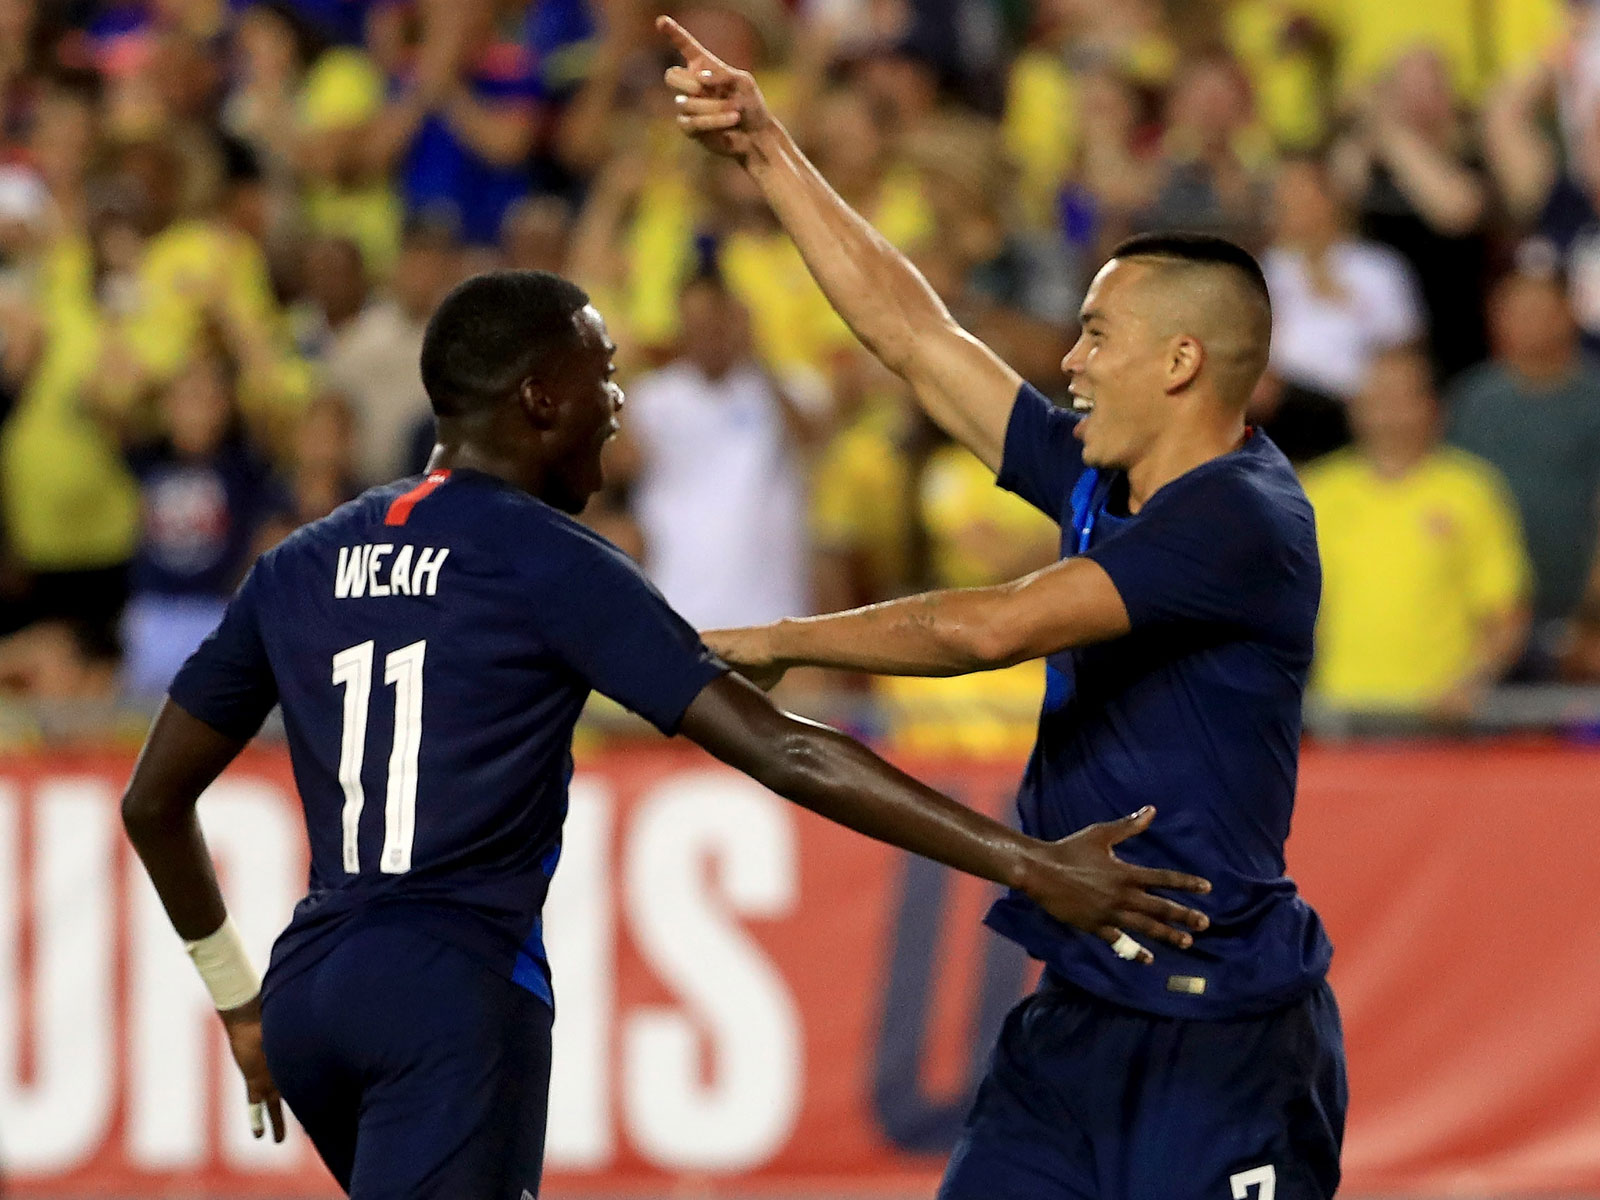 Tim Weah and Bobby Wood celebrate a goal vs. Colombia